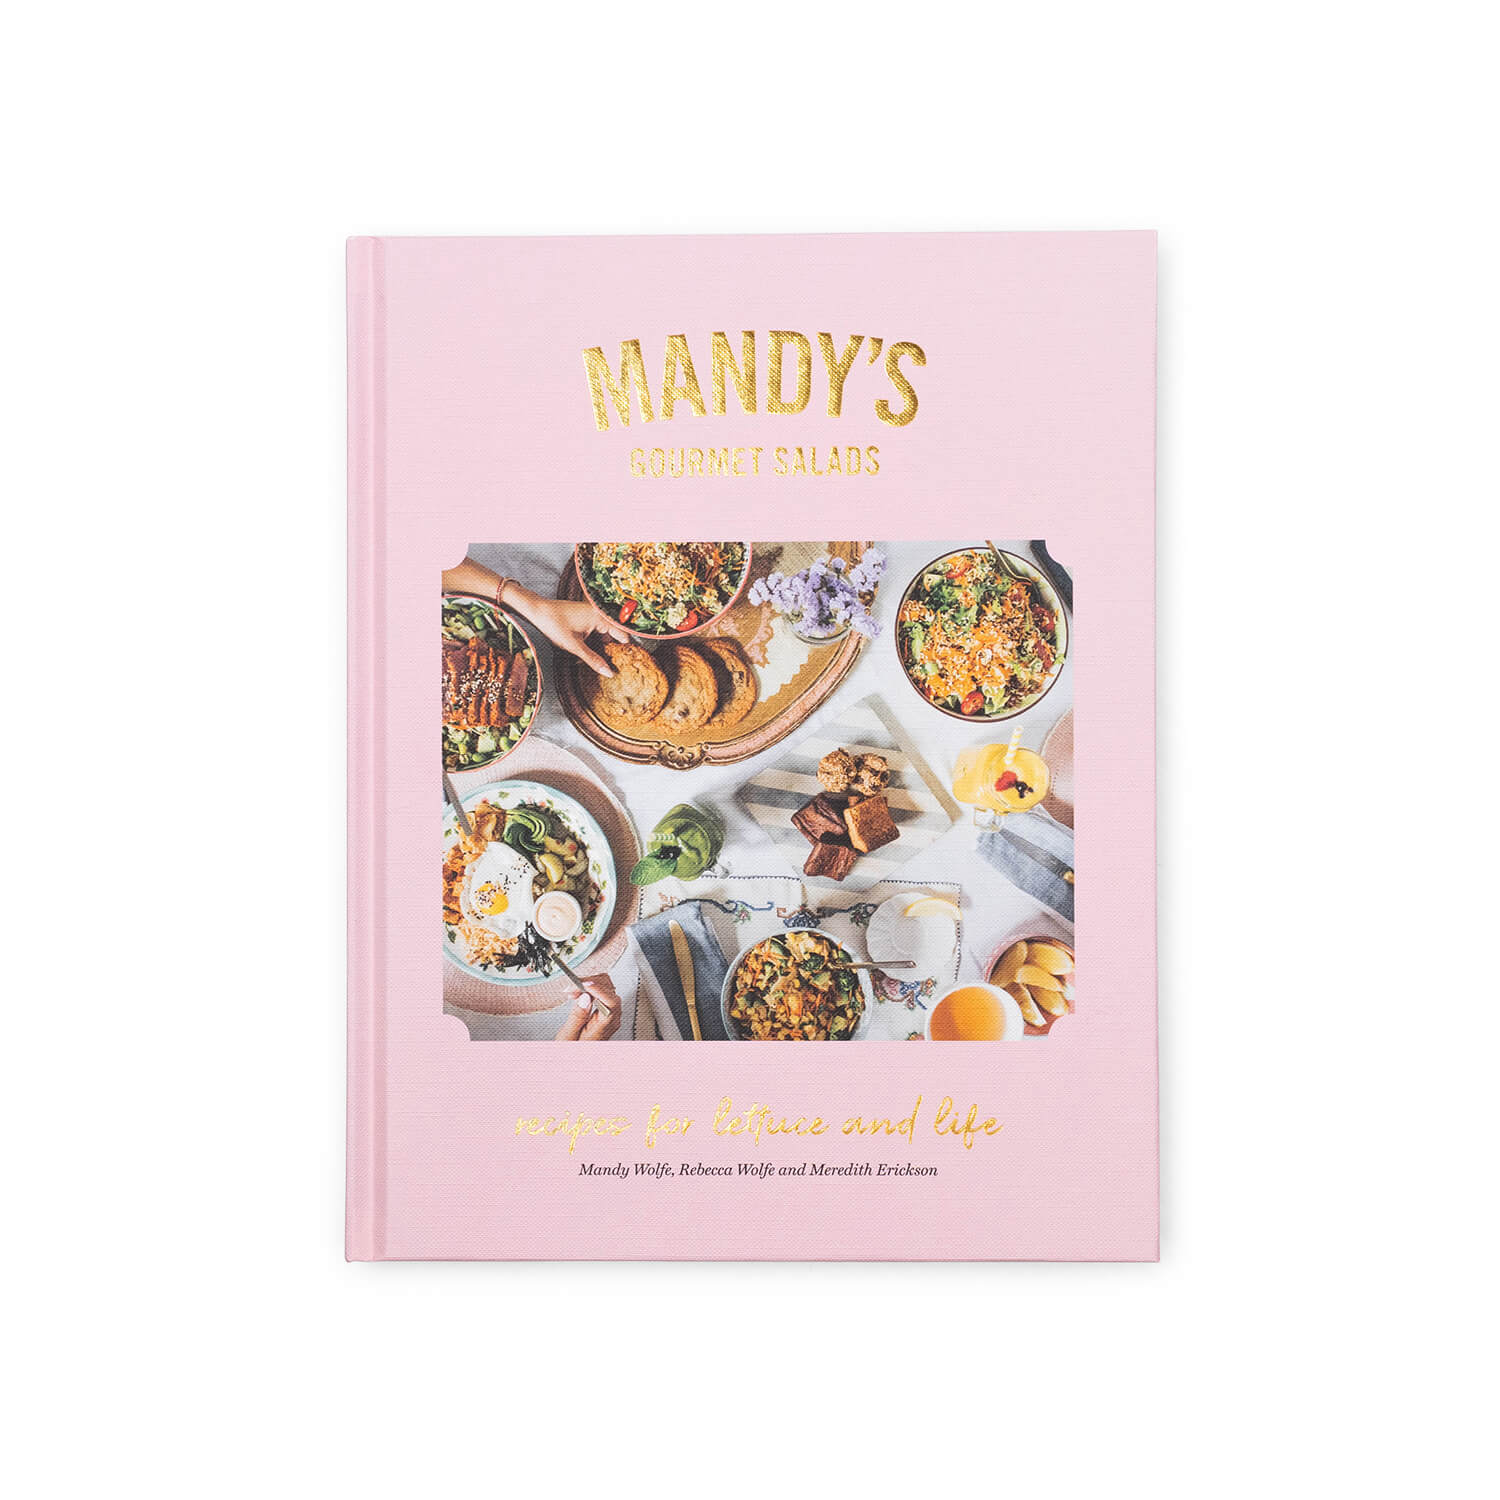 Mandy's Gourmet Salads: Recipes for Lettuce and Life